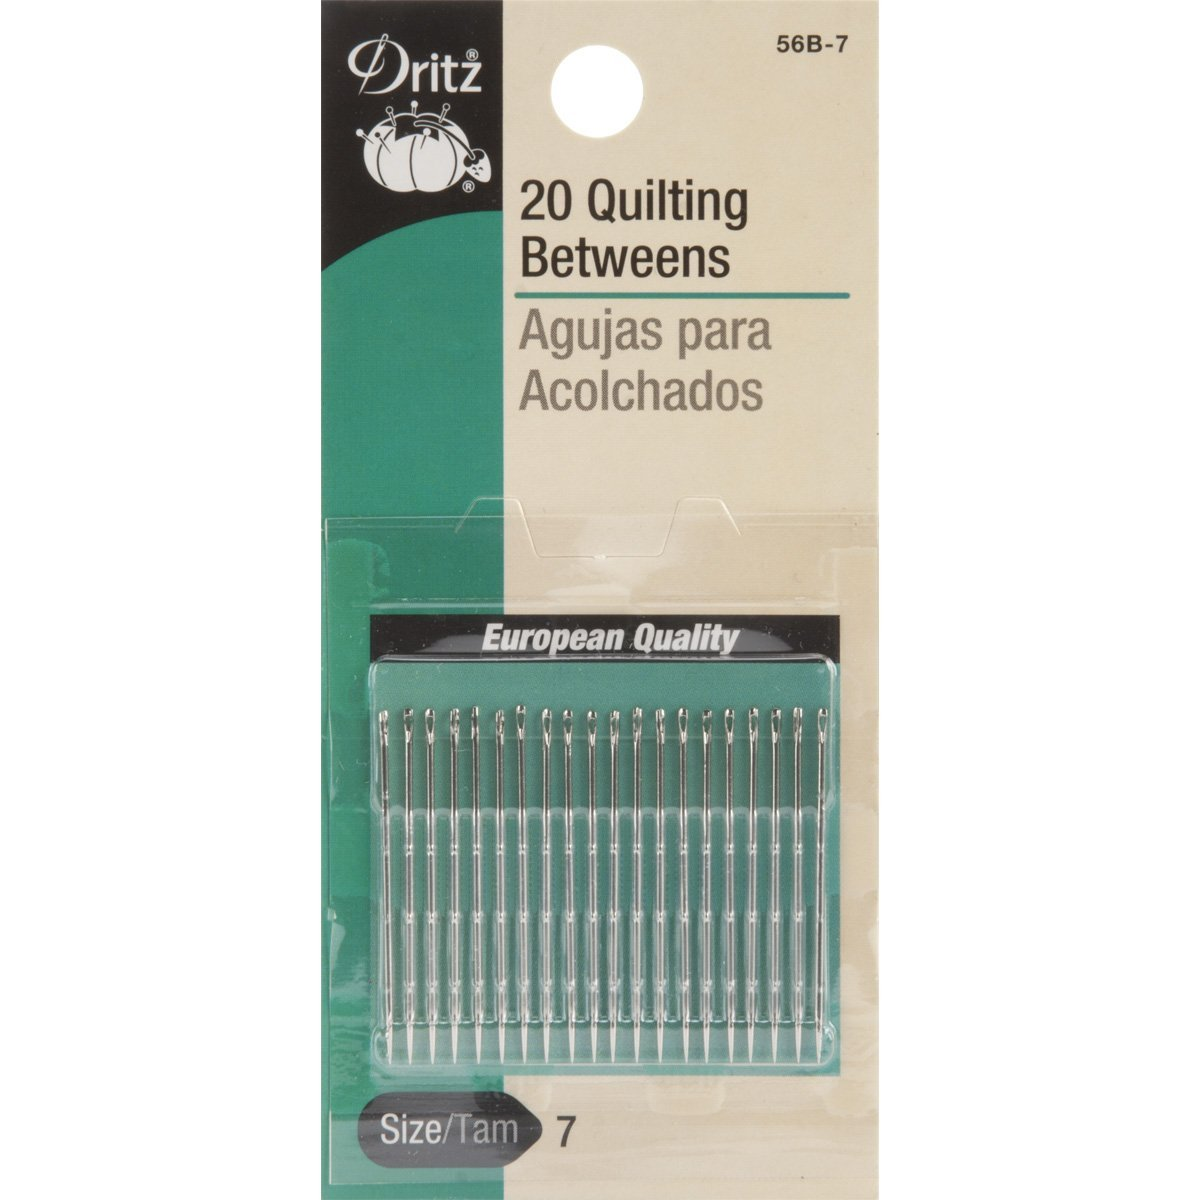 Dritz 56B-7 20 quilting needles, Short needles with round eyes for quilting and detailed handwork